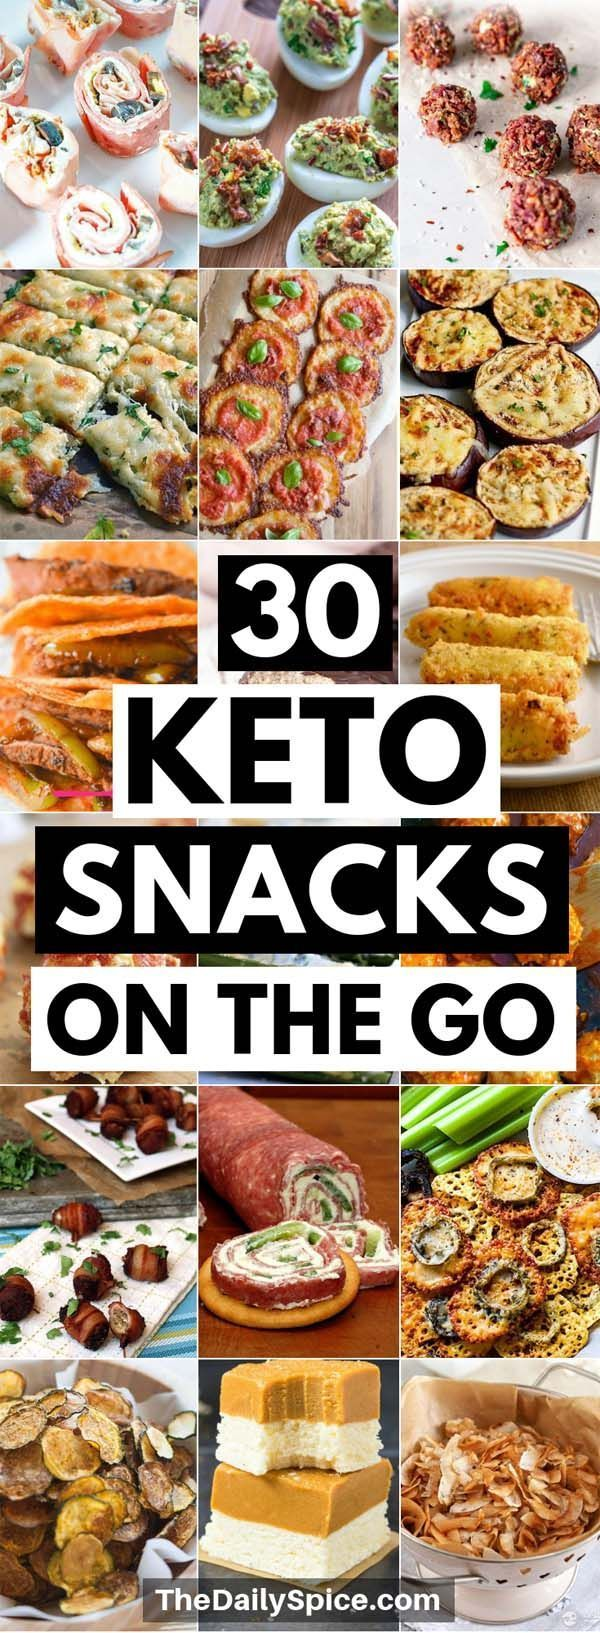 24 Keto Appetizers So Good, Everyone Will Love Them images